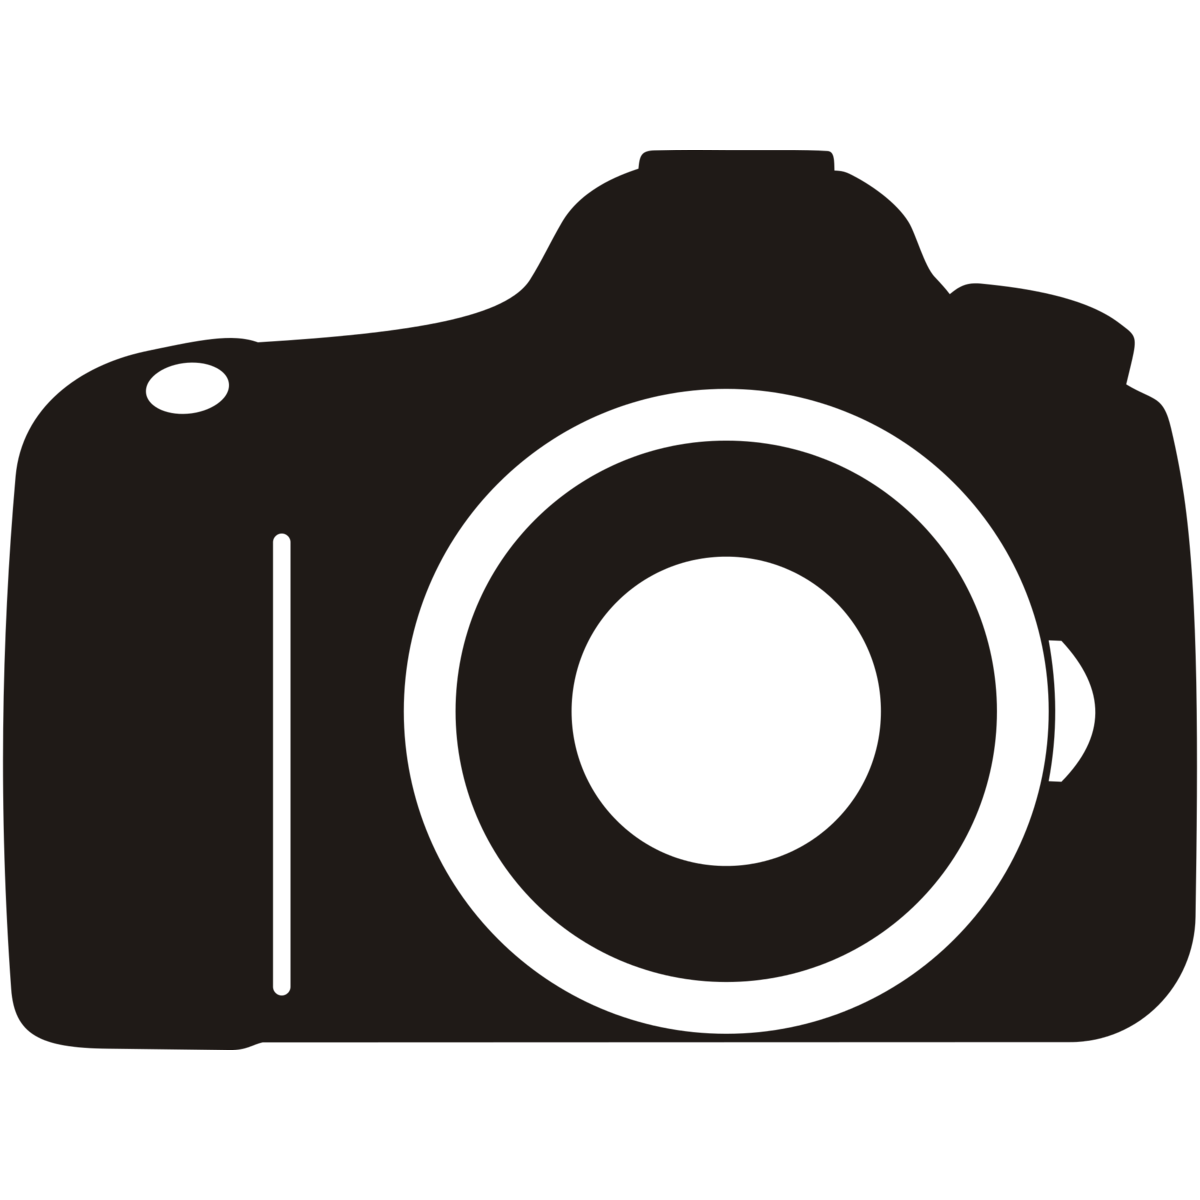 Camera logo clipart images clipart transparent download Free Camera Logo Png, Download Free Clip Art, Free Clip Art on ... clipart transparent download